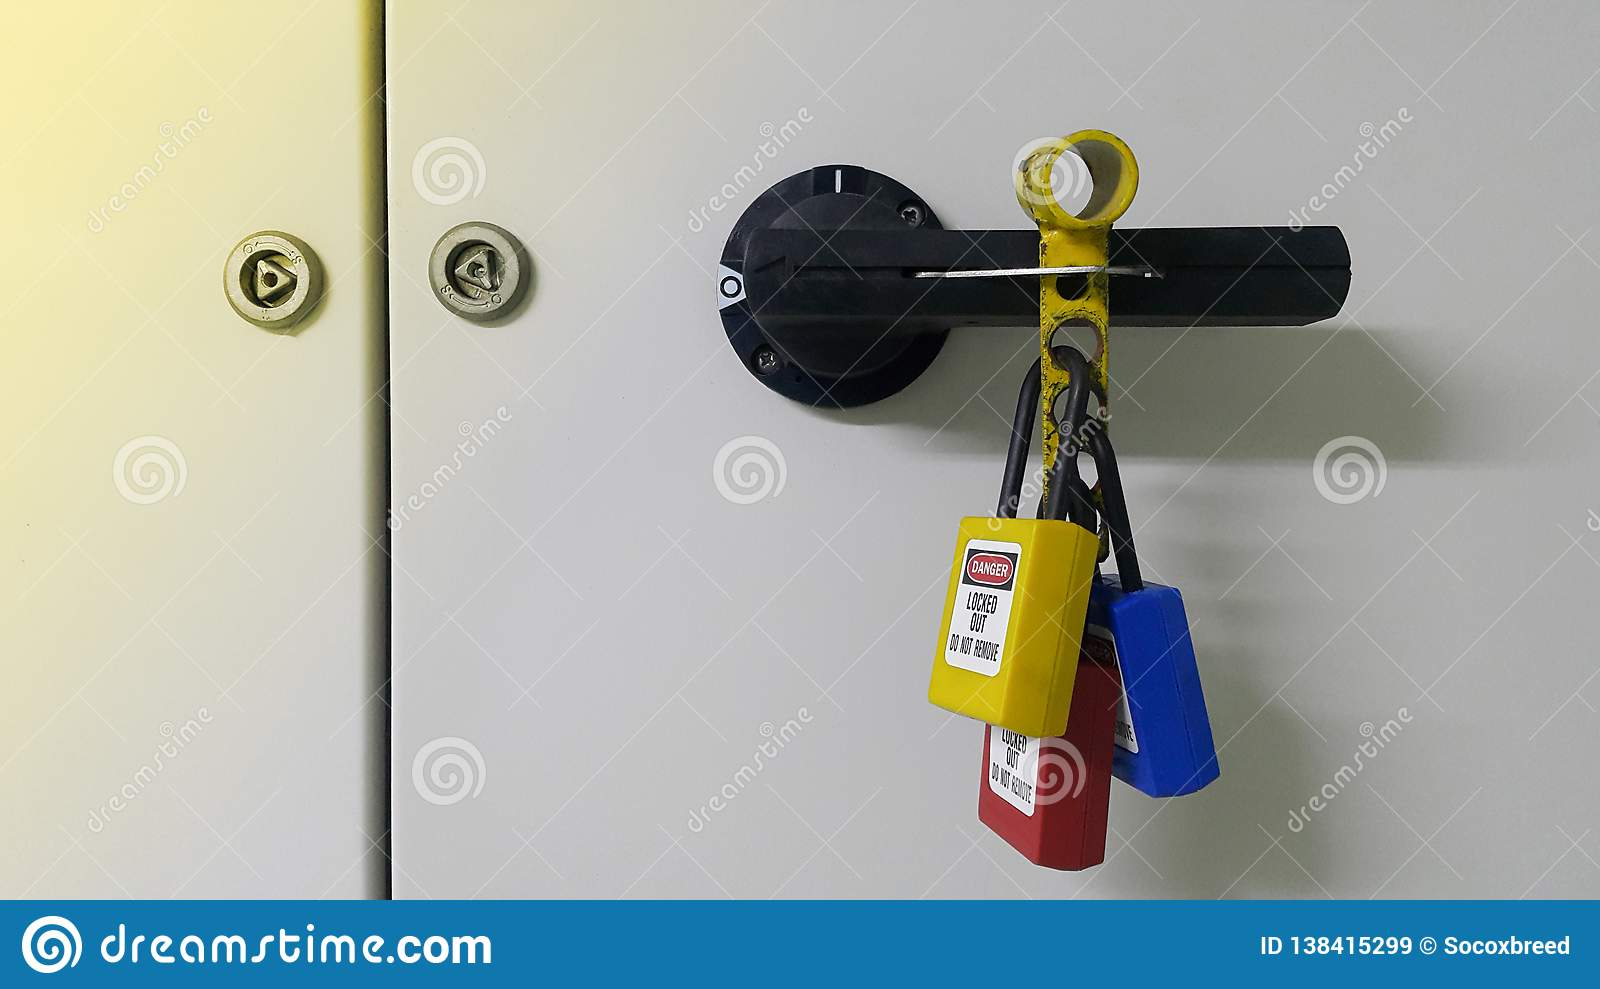 Lockout devices and safety first point